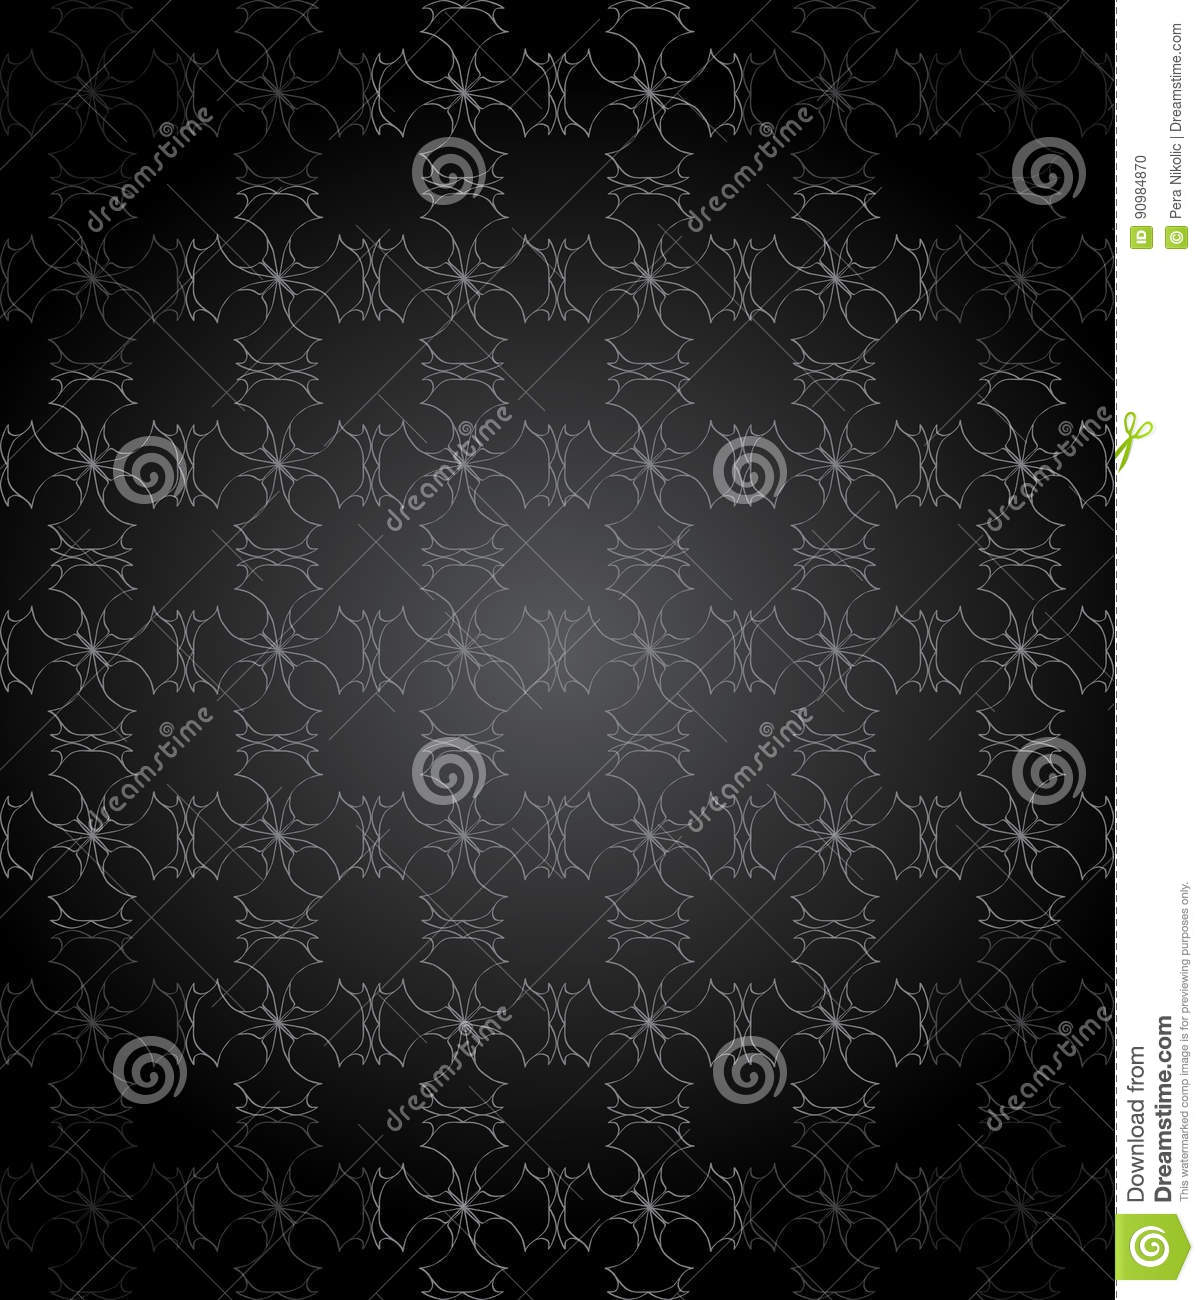 Download Seamlessly Wallpaper With Dark Color Tones Stock Vector Illustration Of Paint Modern